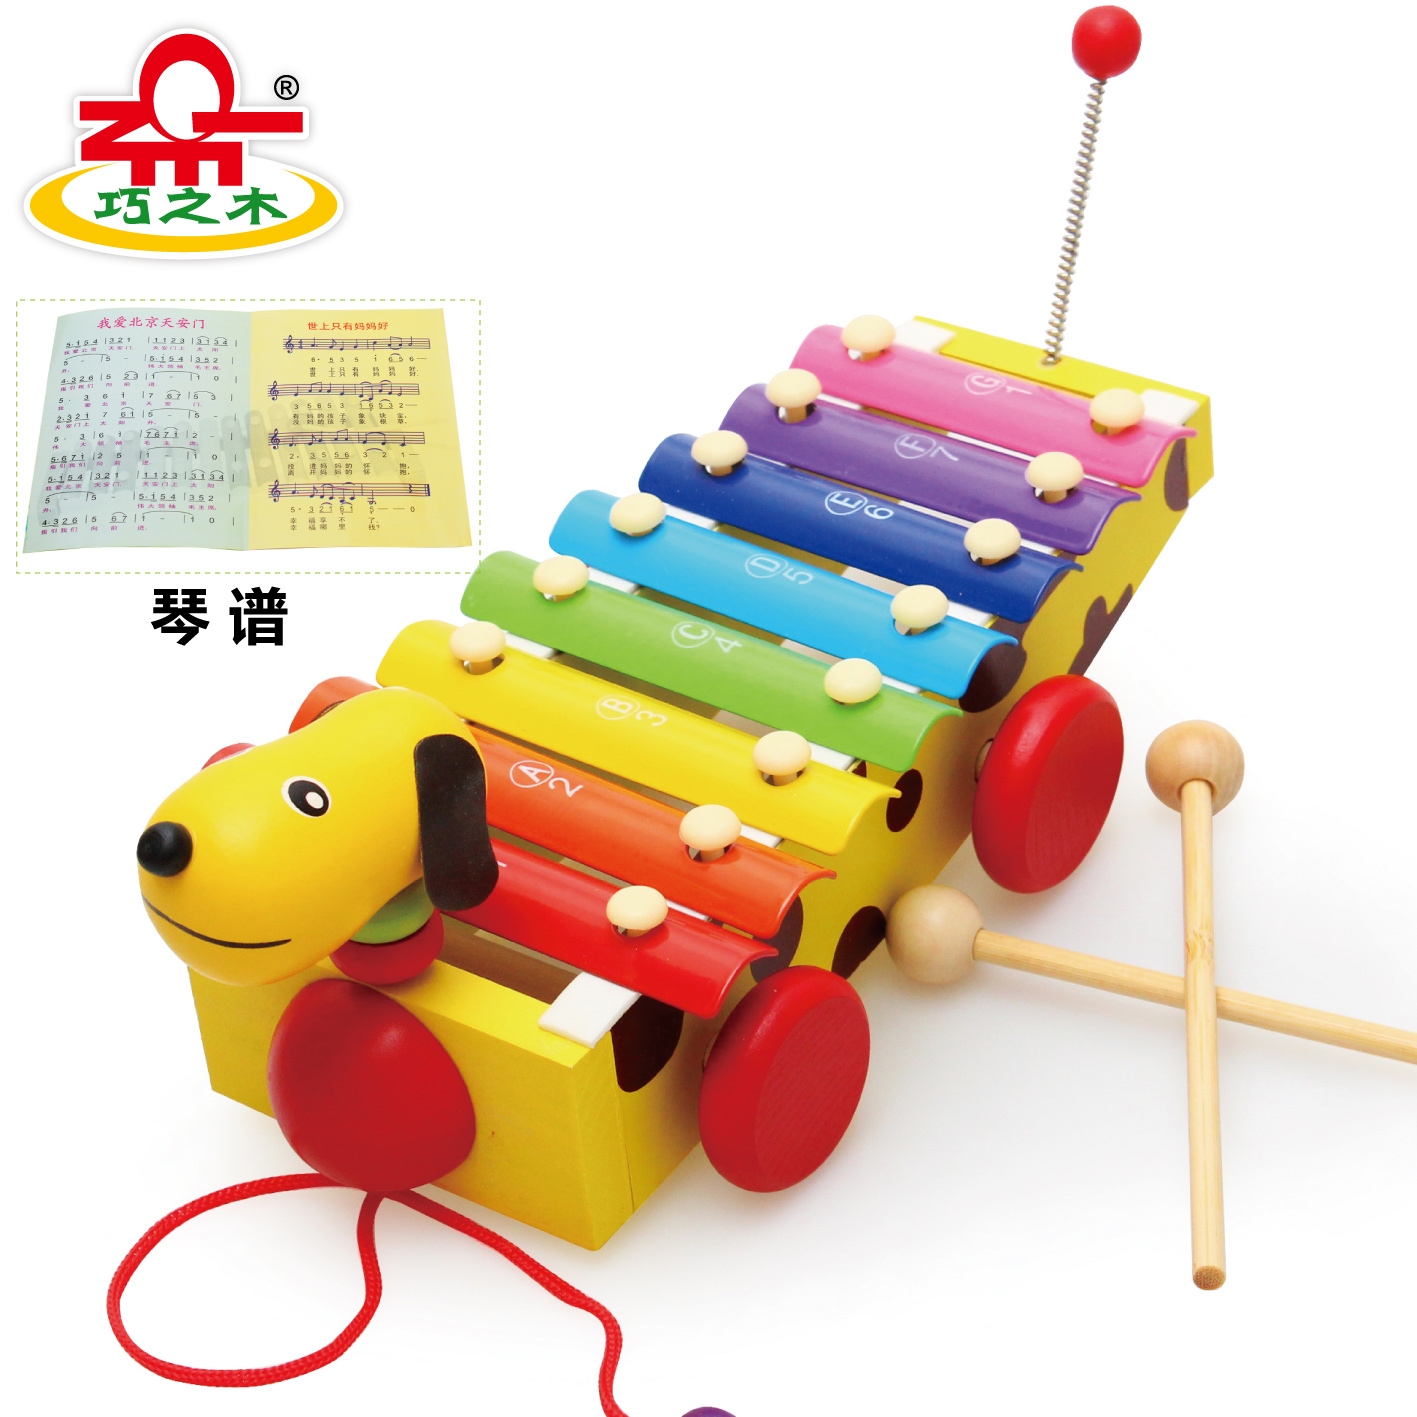 8 Musical Scale Baby Children Boys And Girls Puzzle Early Education Birthday Gift Toys 6 Months